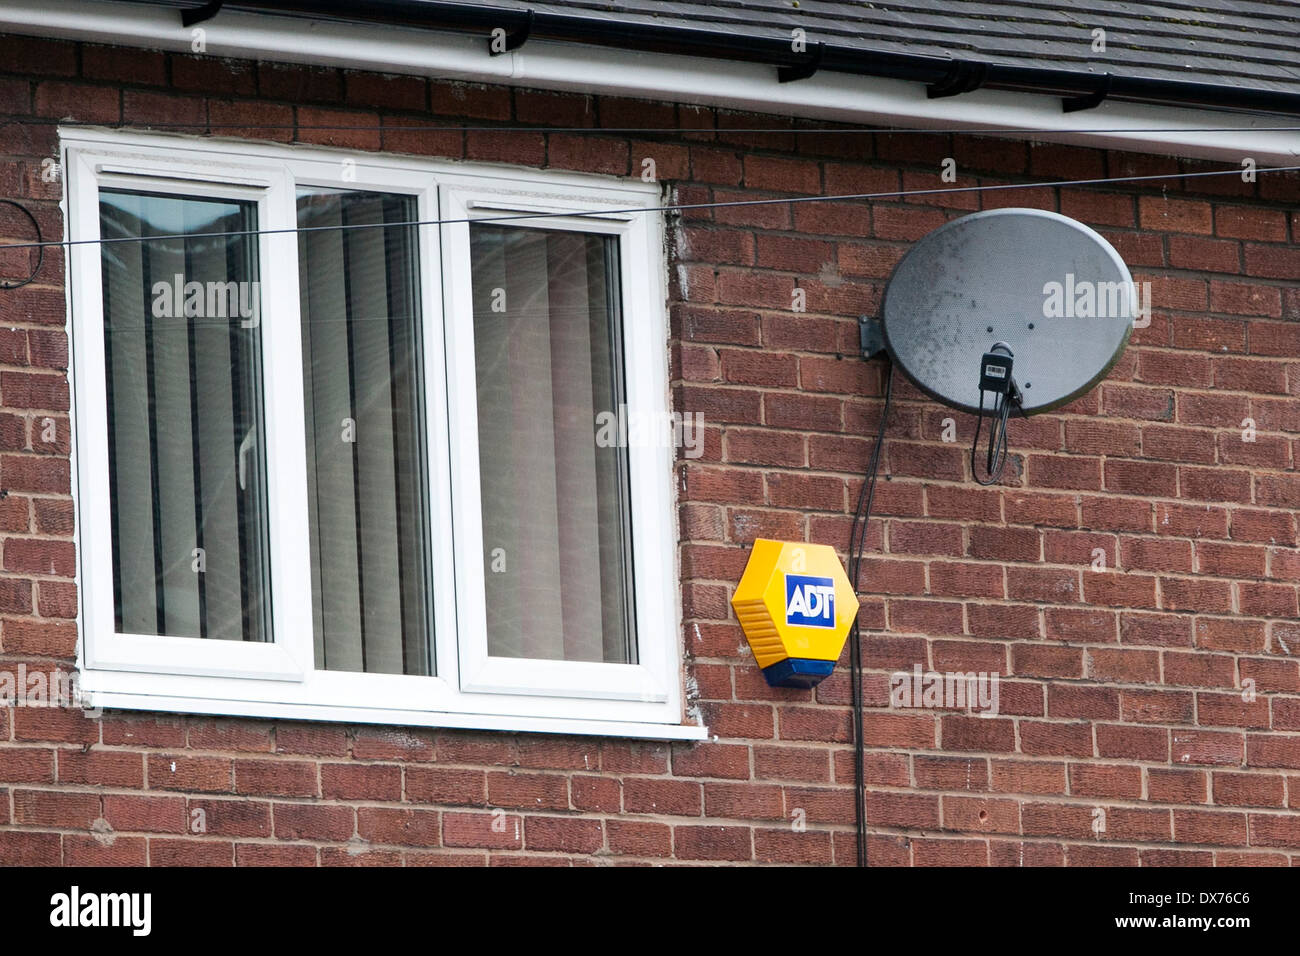 Adt Security Stock Photos Images Alamy Cameras Wiring Diagram An Alarm And A Satellite Tv Dish On House Image